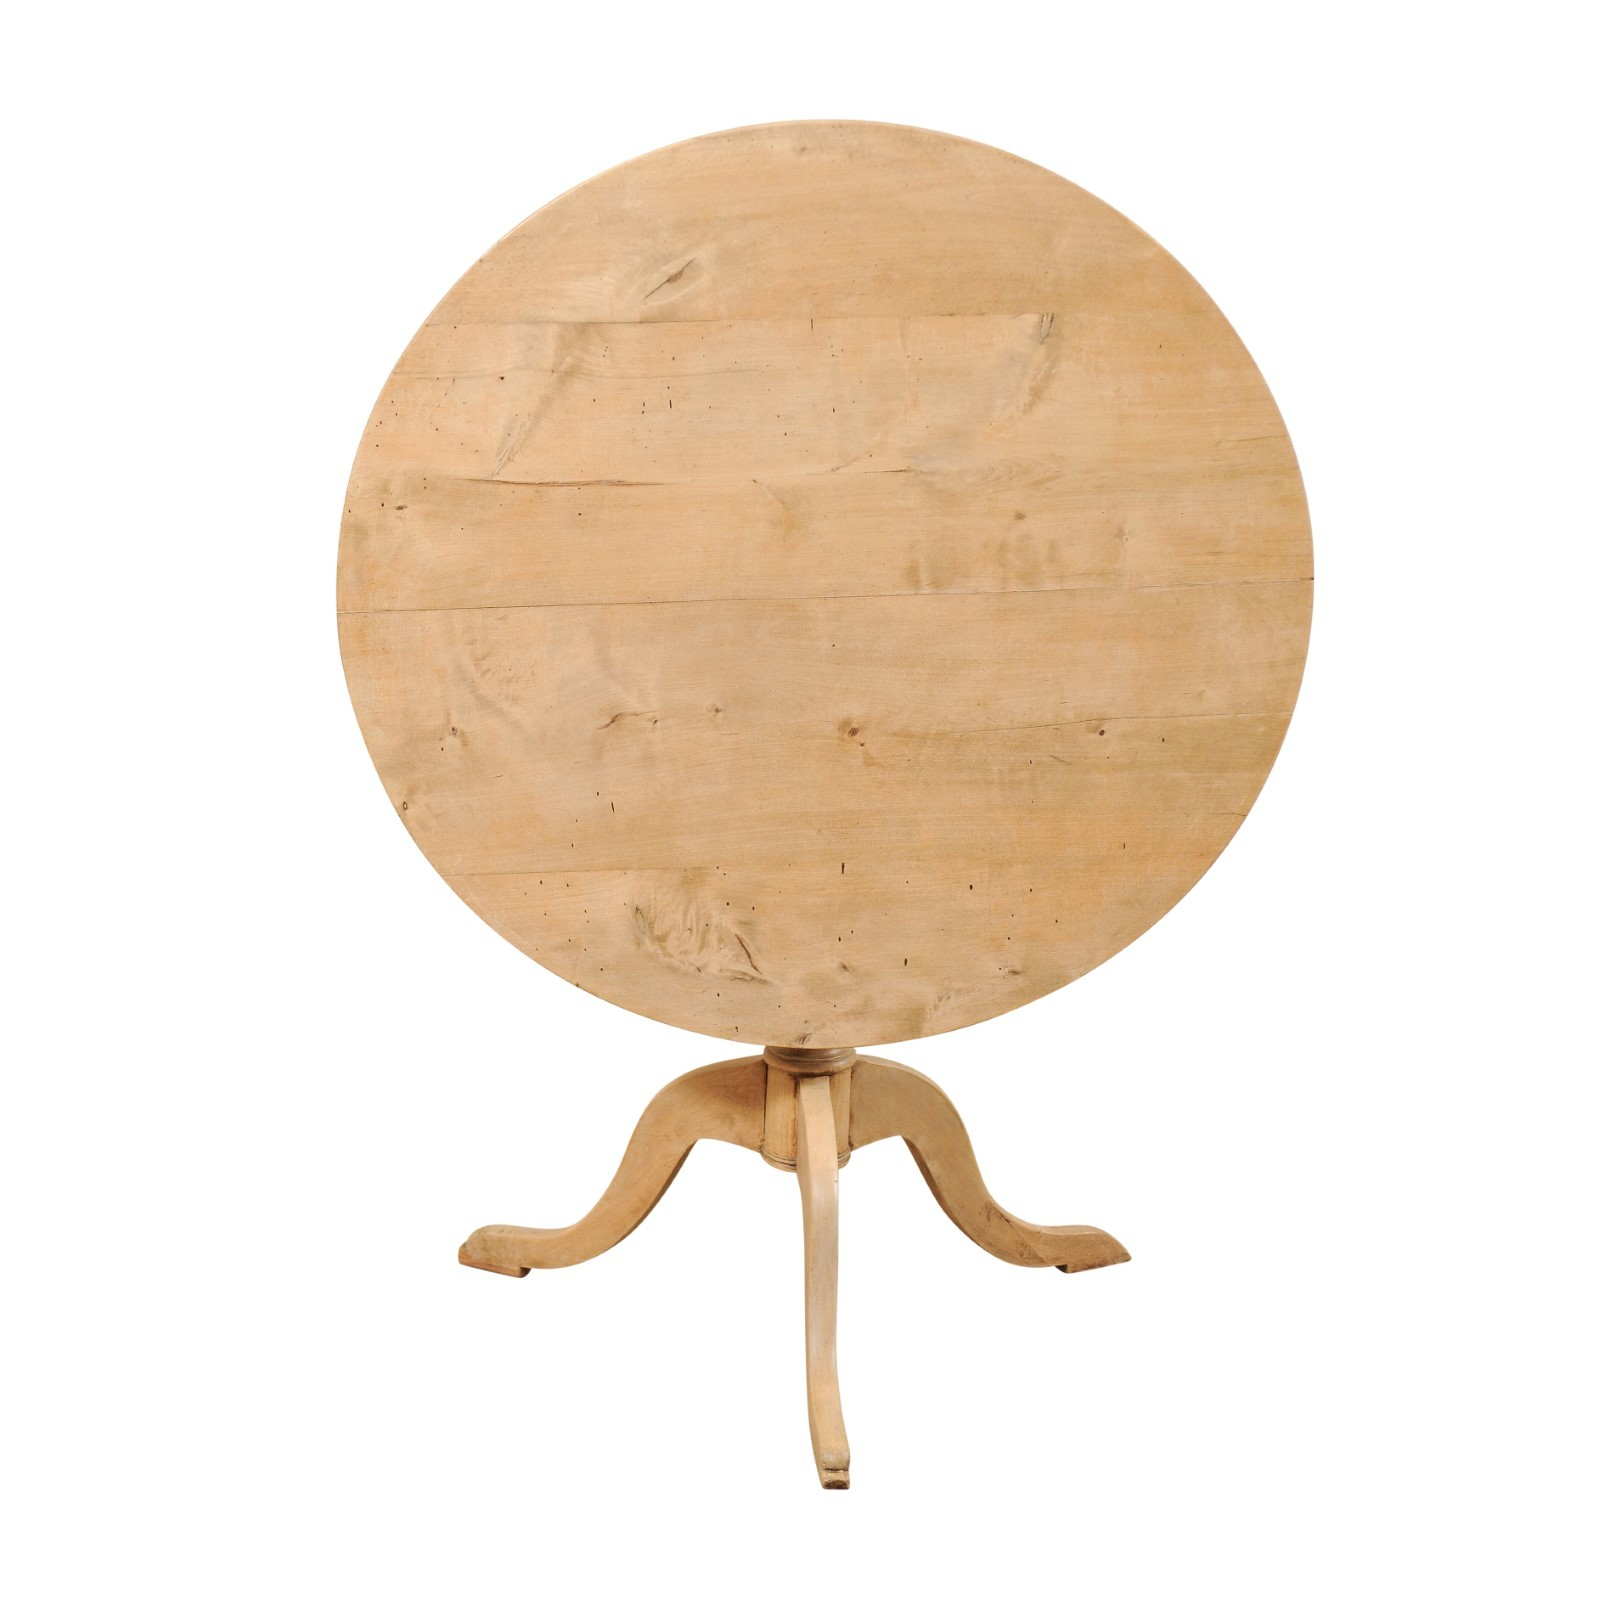 Swedish Tilt-Top Table, 19th C.